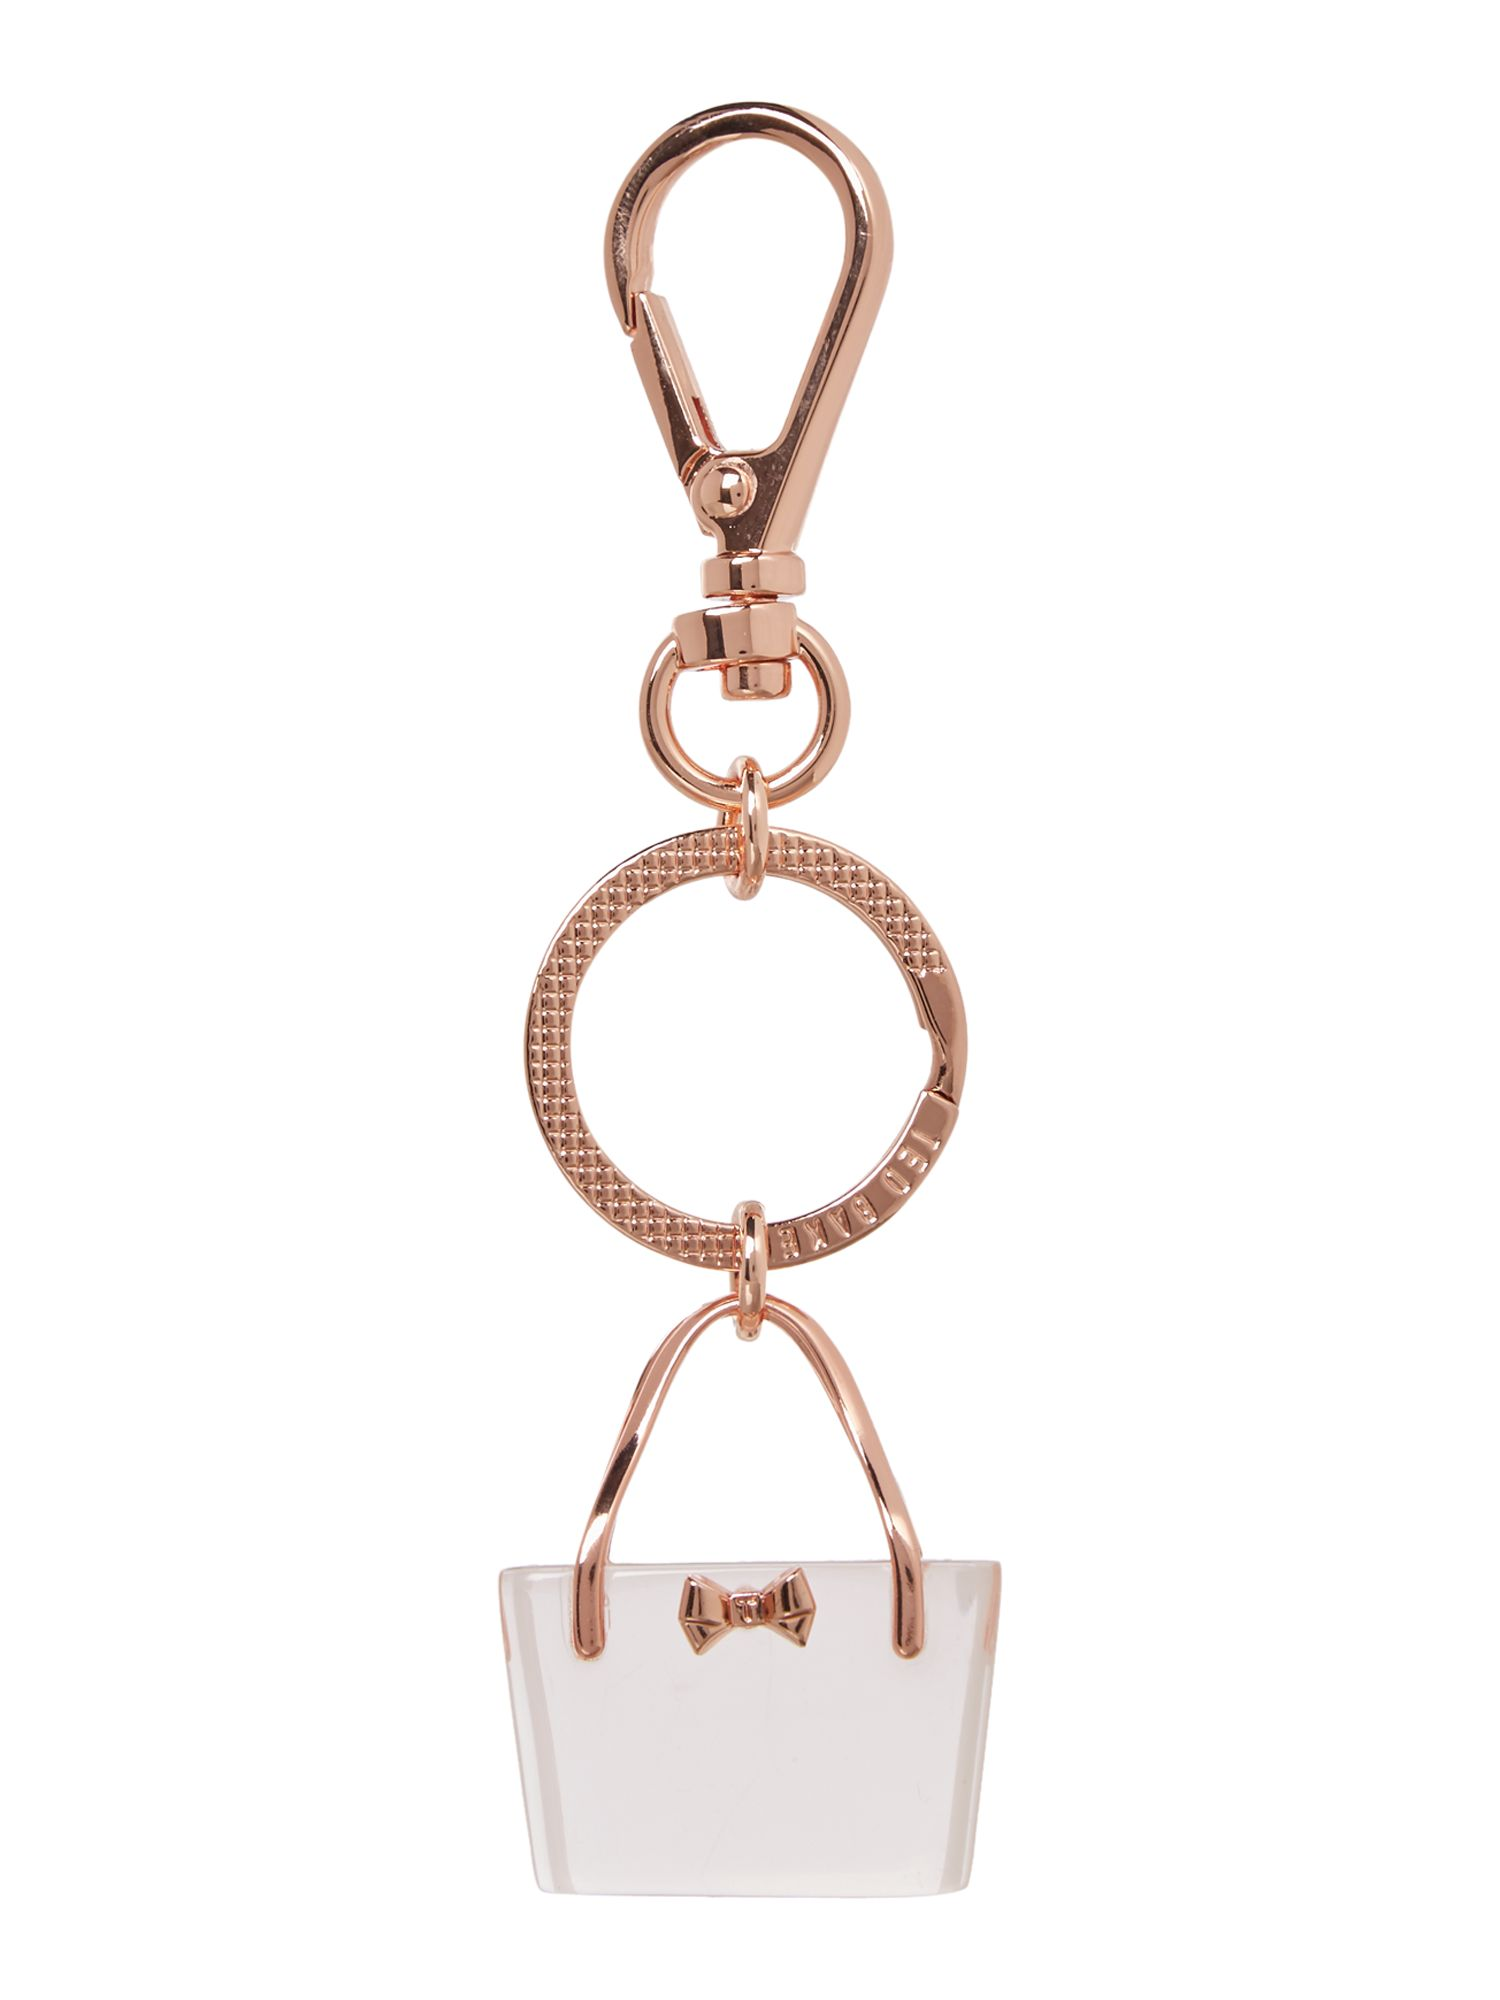 Buy Cheap Keyring Light Compare Clothing Accessories Prices For Best Uk Deals